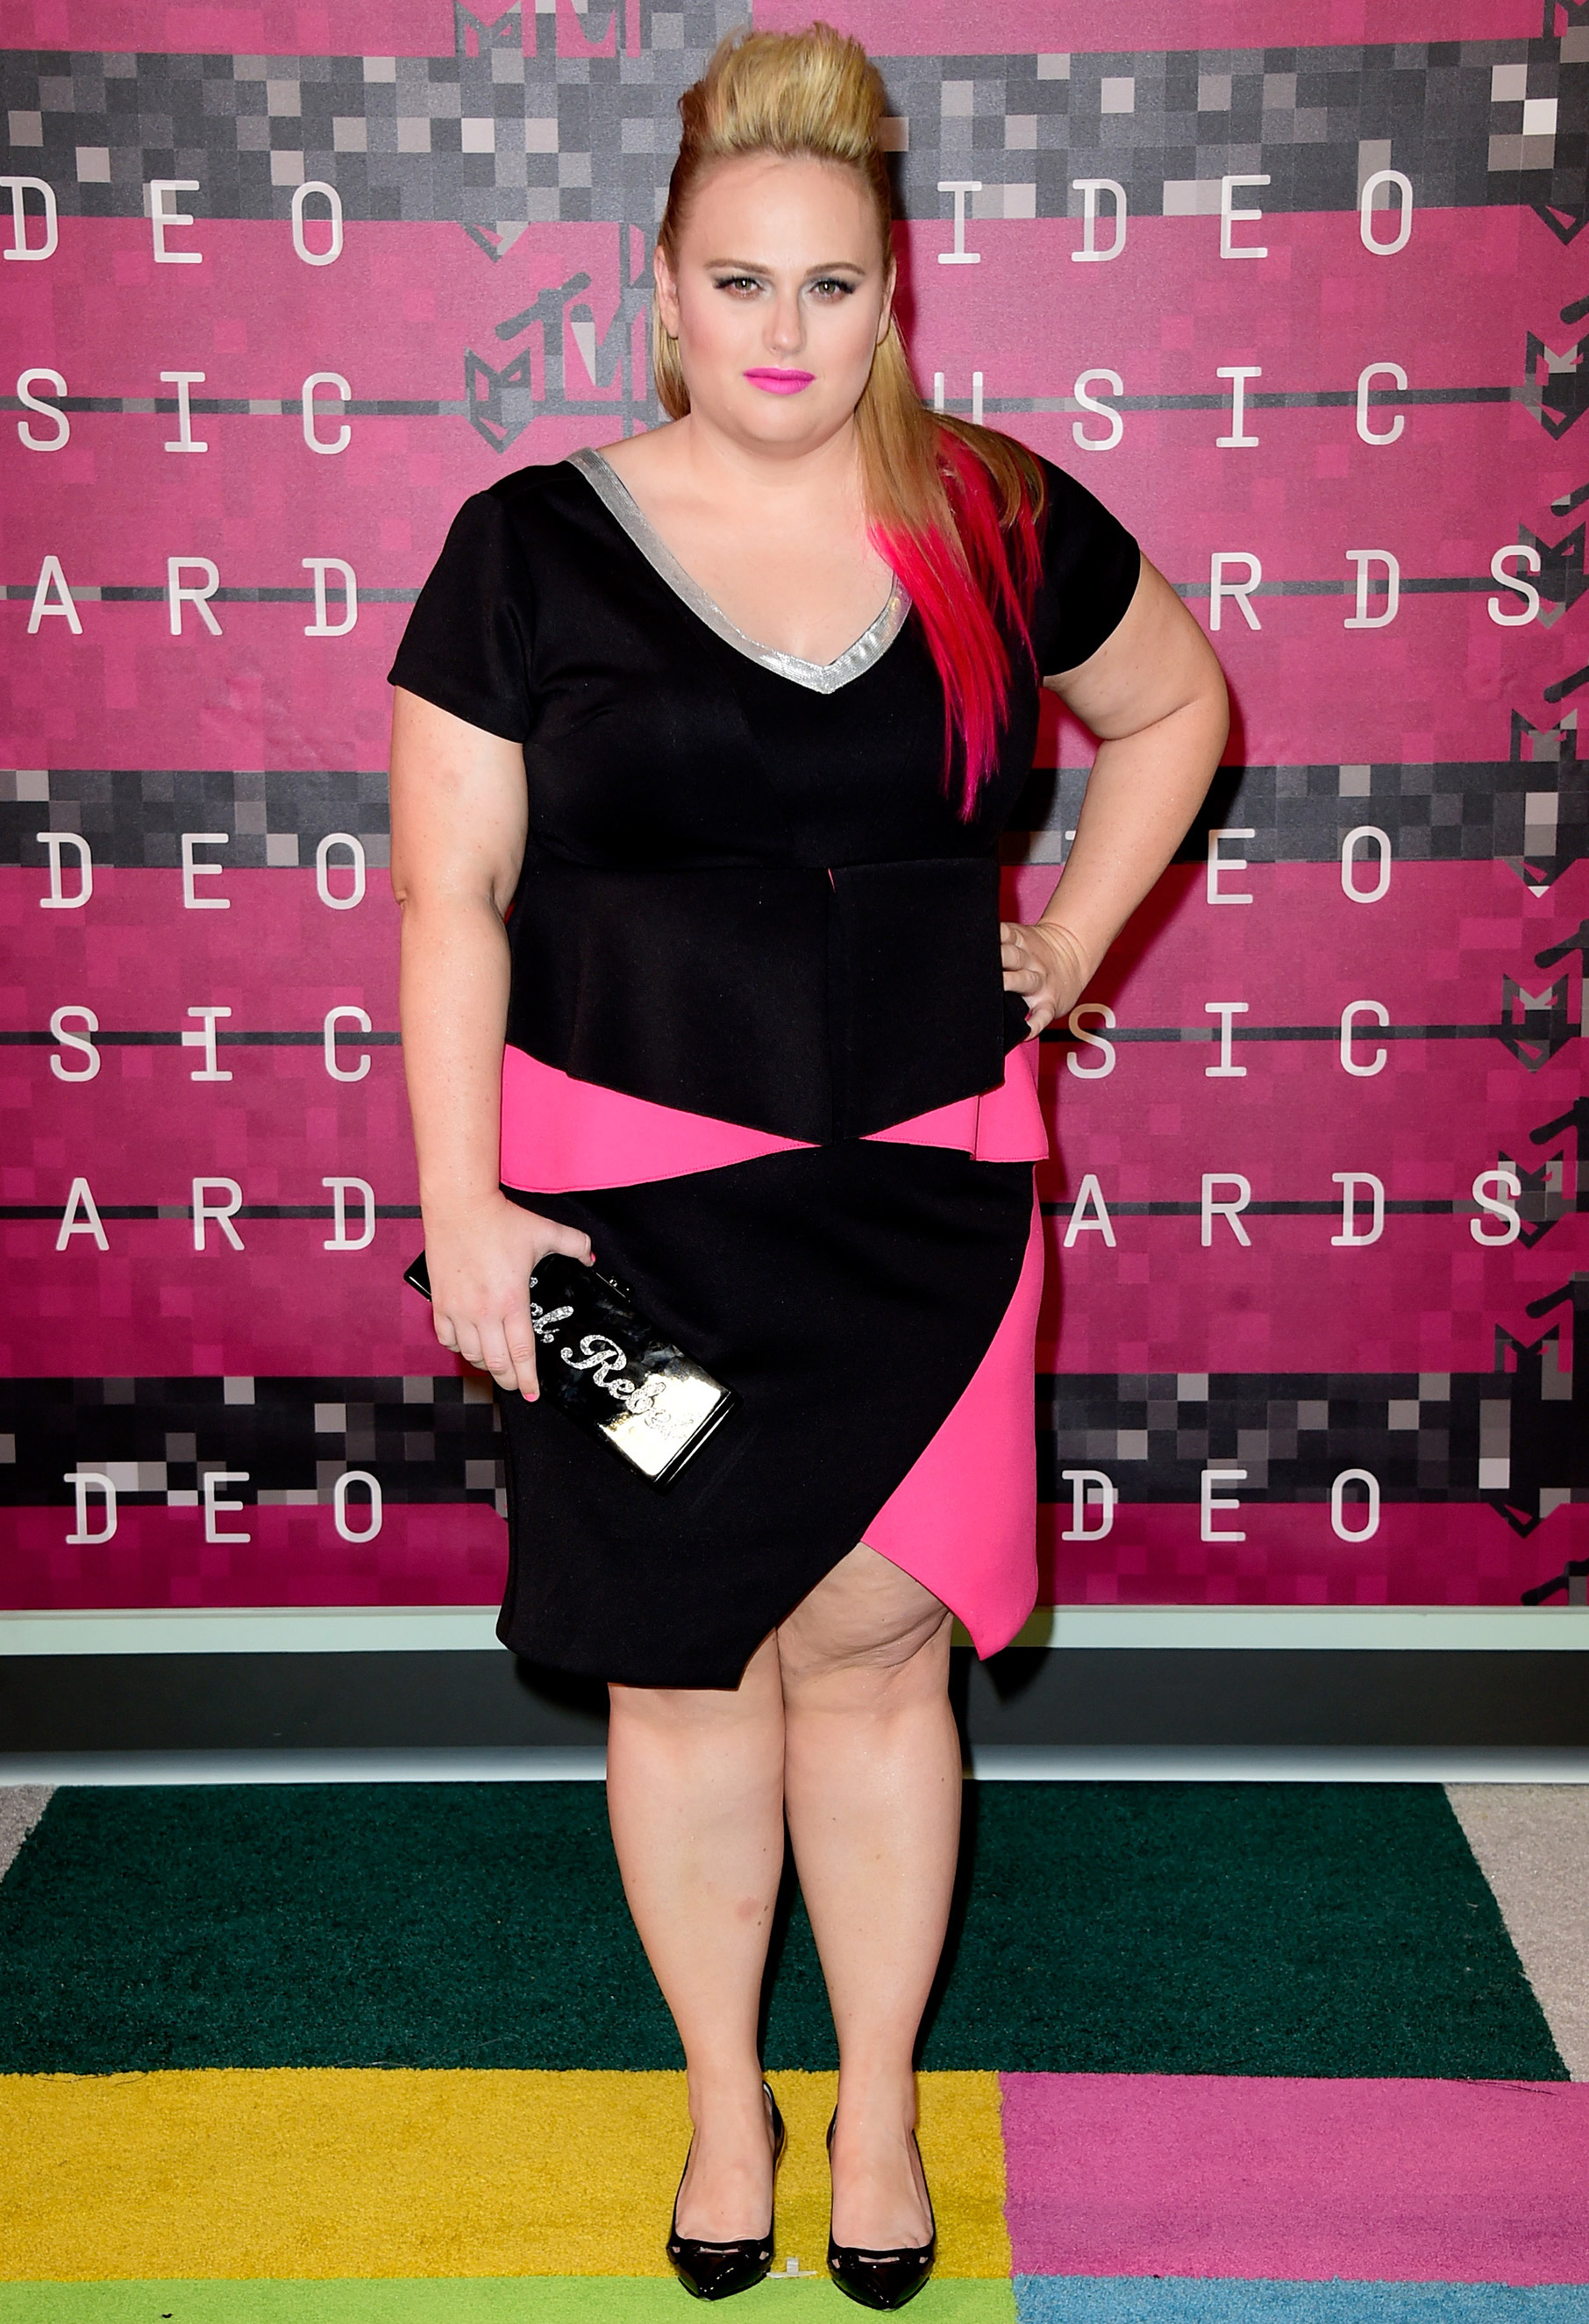 Rebel Wilson arrives at the 2015 MTV Video Music Awards at Microsoft Theater on Aug. 30, 2015 in Los Angeles.